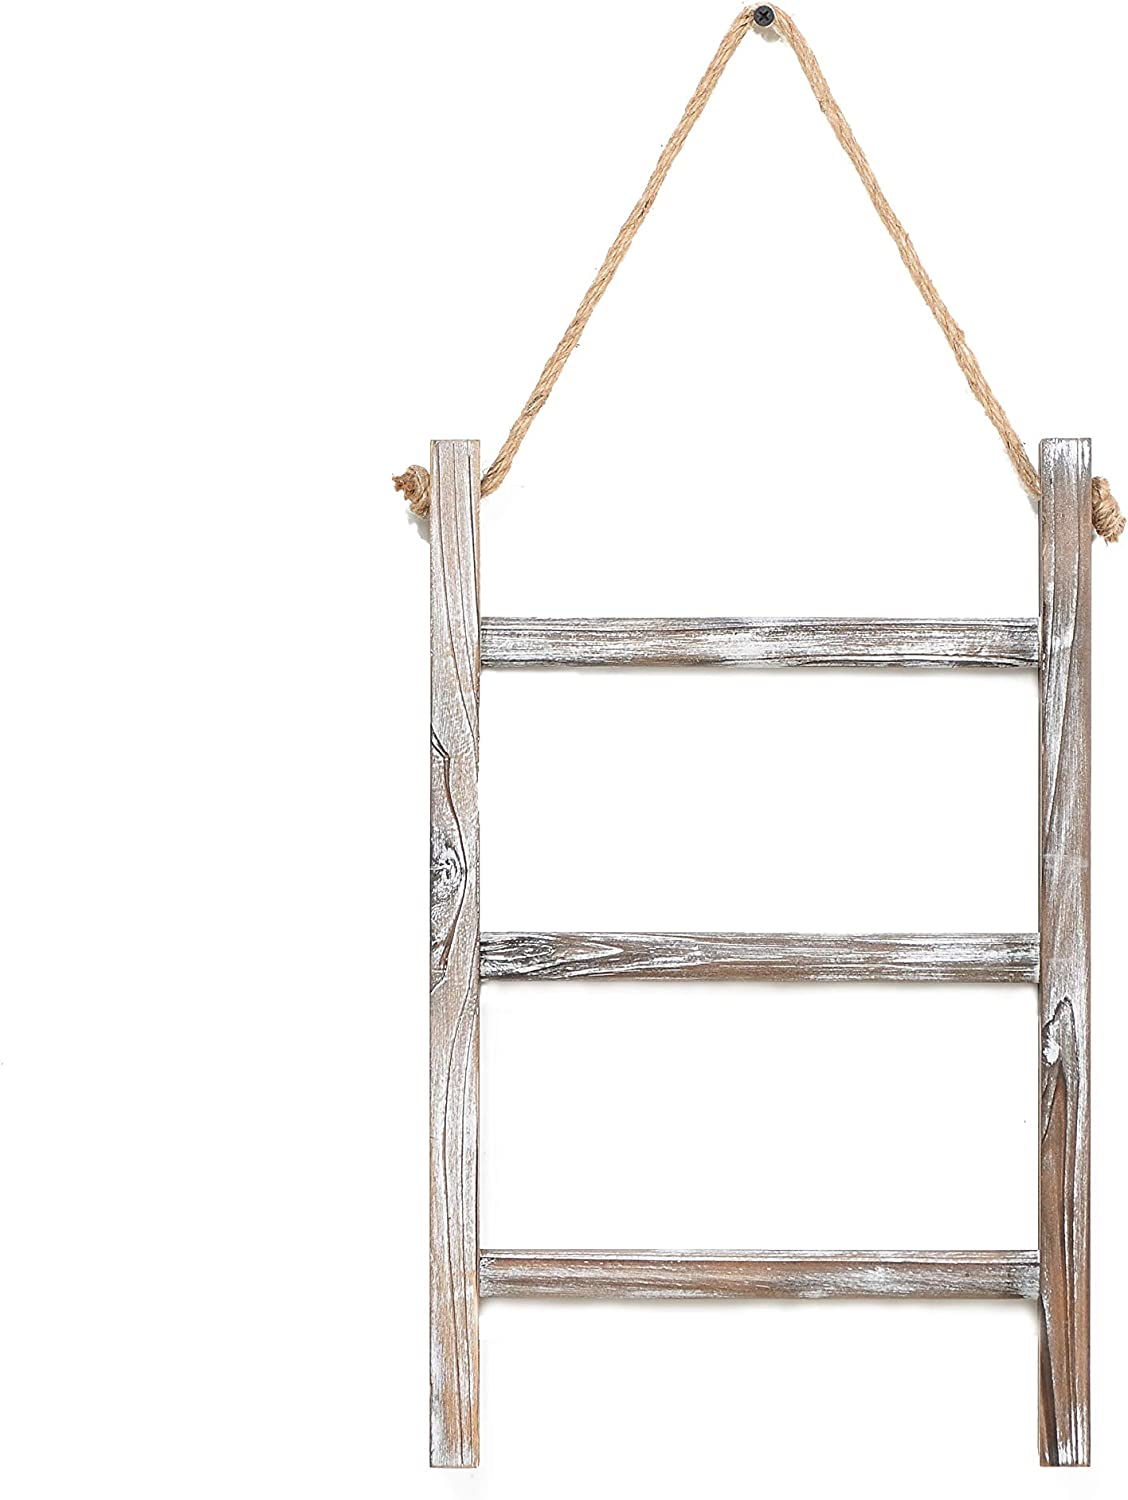 ZH & ART 3-Tier Wall-Hanging Hand Towel Ladder with Rope Rustic Wood Small Size 16 x 10 Inch Decorative Farmhouse Storage Hanging Kits Classic Vintage Countryside for Bathroom Kitchen